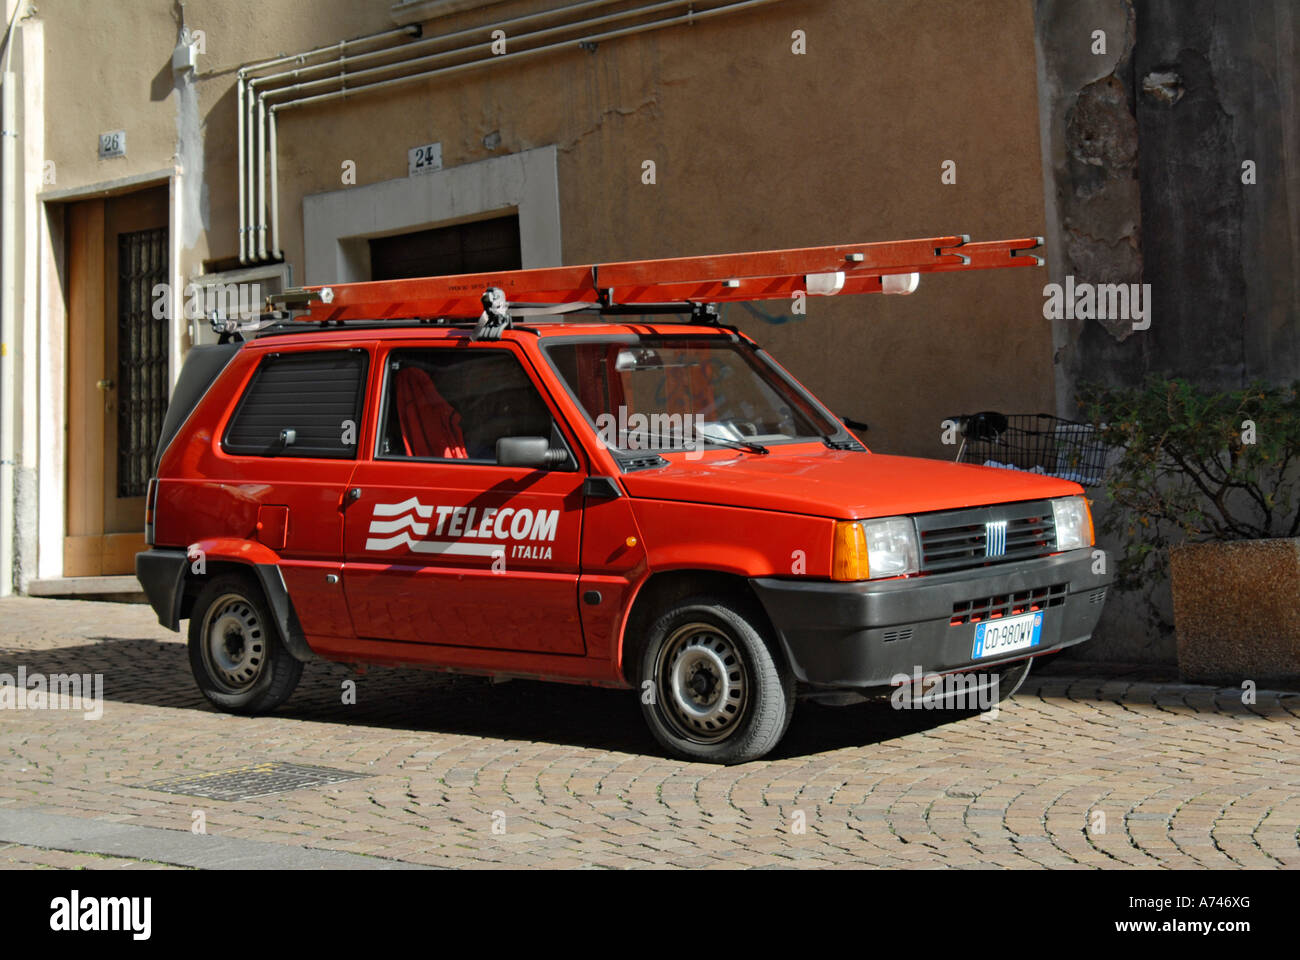 Italian Telecom Fiat Panda Van Ideal For The Narrow